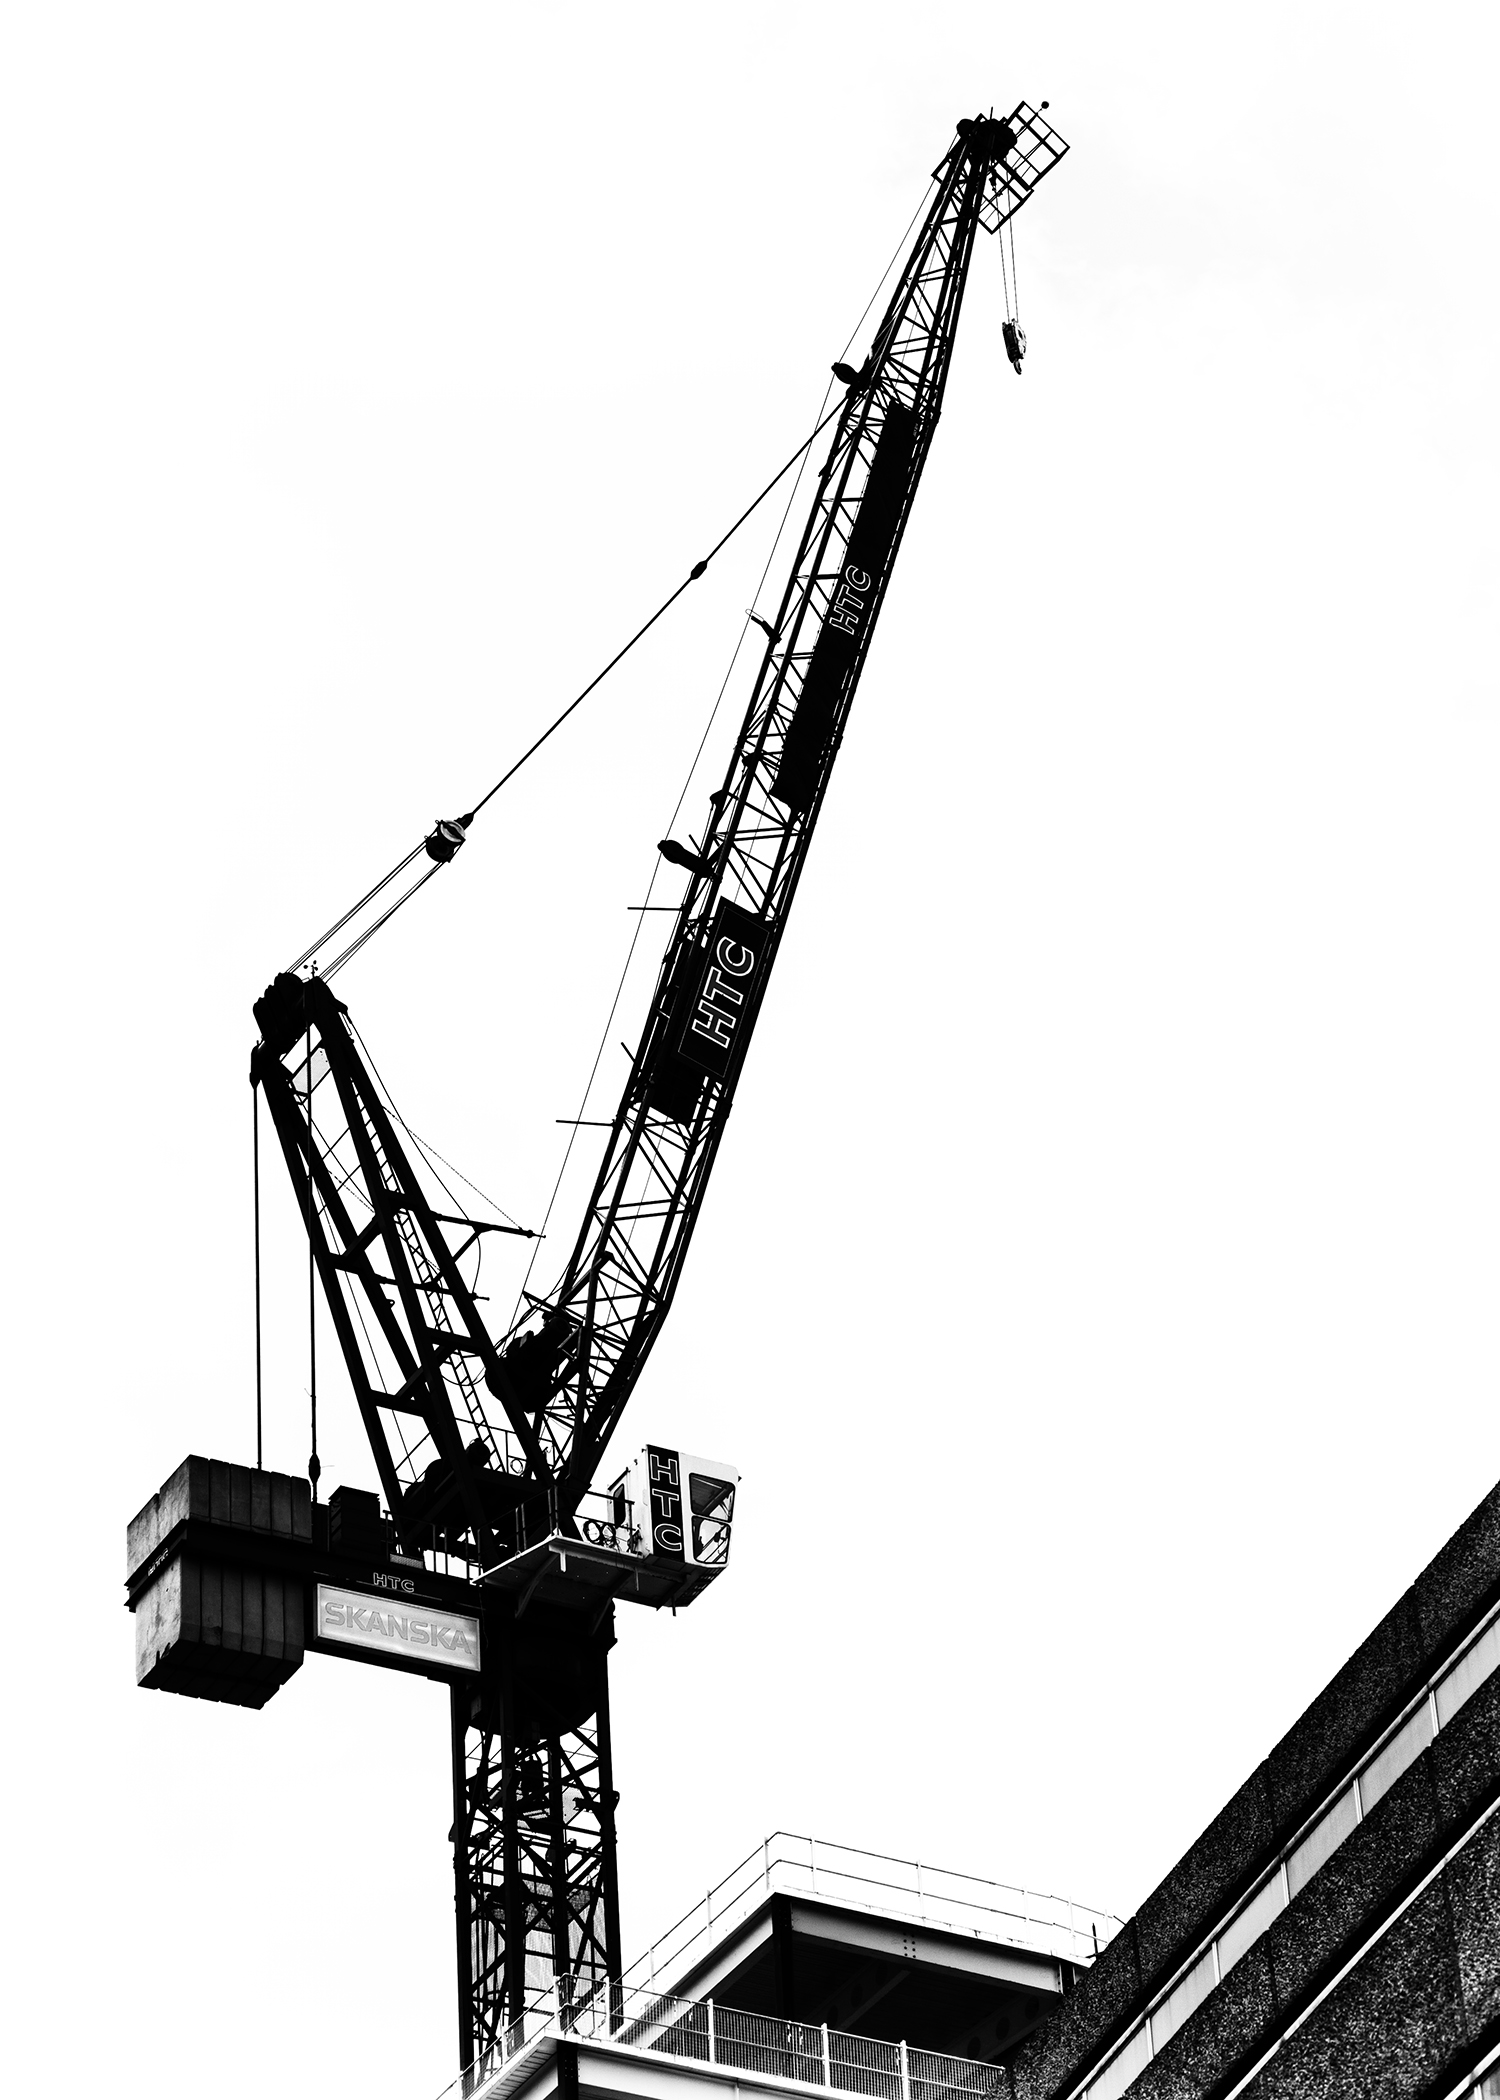 A construction project silhouette against the bright white clouds on an overcast London afternoon